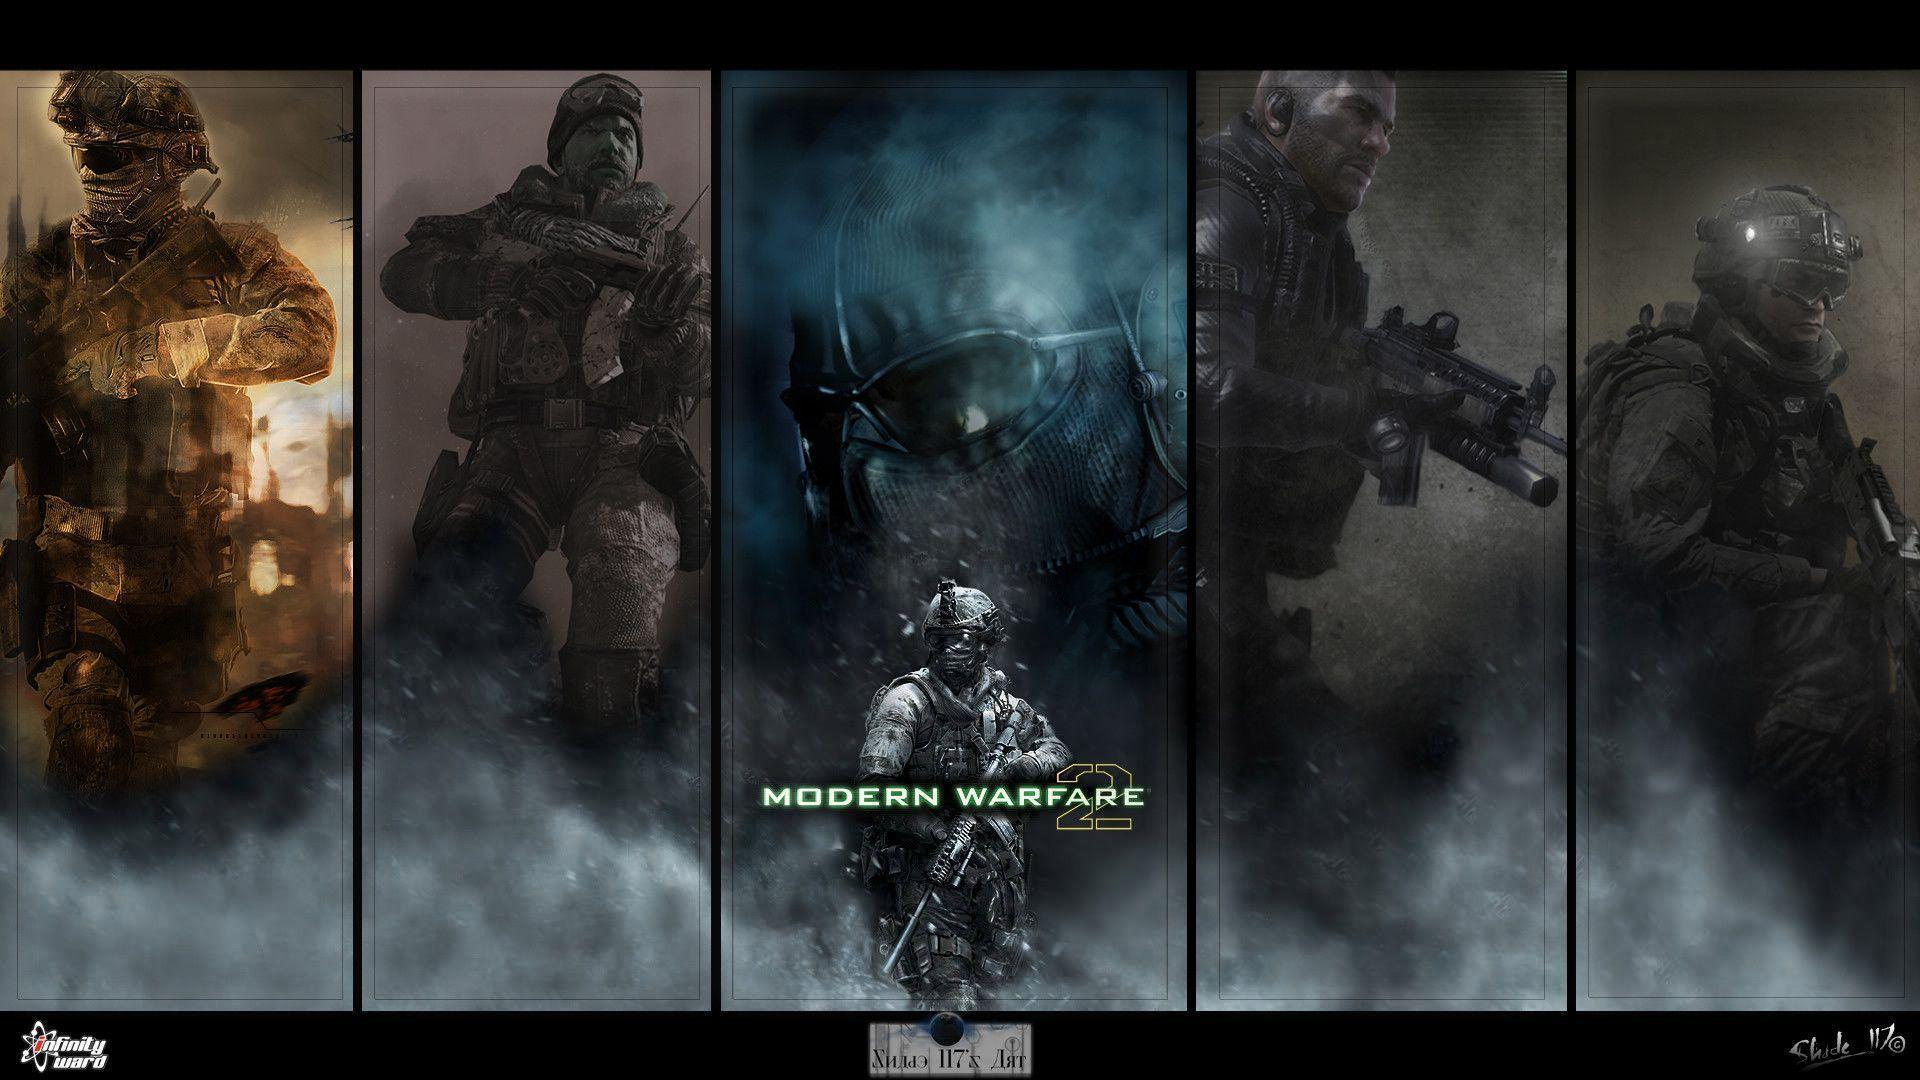 Call Of Duty Modern Warfare Season 2 Wallpapers Wallpaper Cave